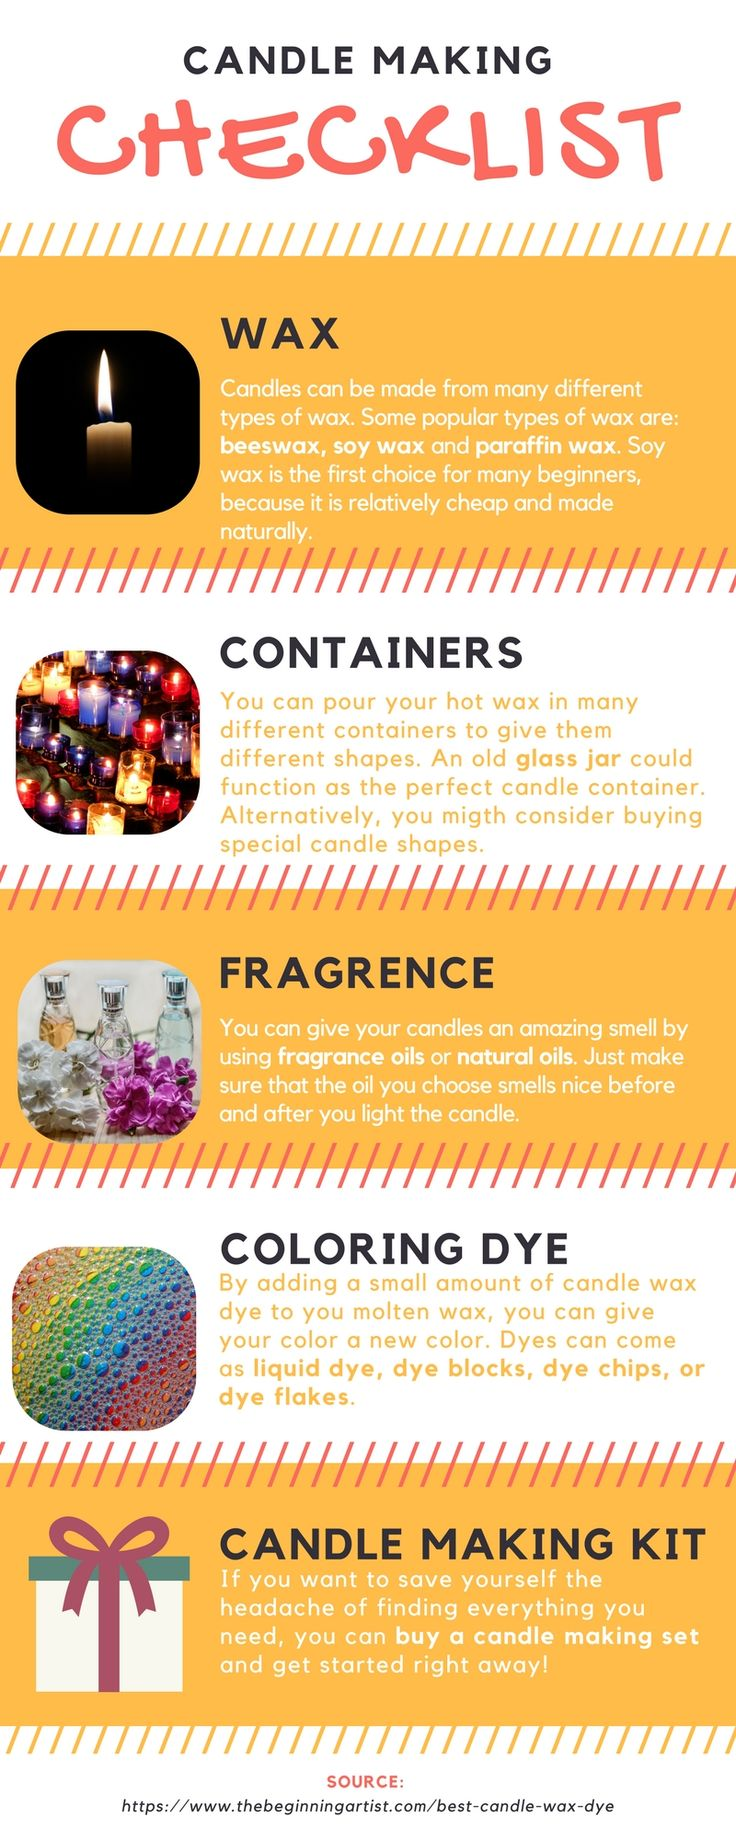 [INFOGRAPHIC] Everyone love candles! But did you try making your own homemade candles? All you need to start is your favorite wax and some containers. But if you want to give your candles a little, you can add fragrance oils and candle wax dyes as well. If you are not quite sure what you need, you might want to start with a candle making kit that includes everything already. Read our website to find our recommended candle making kits for beginners.